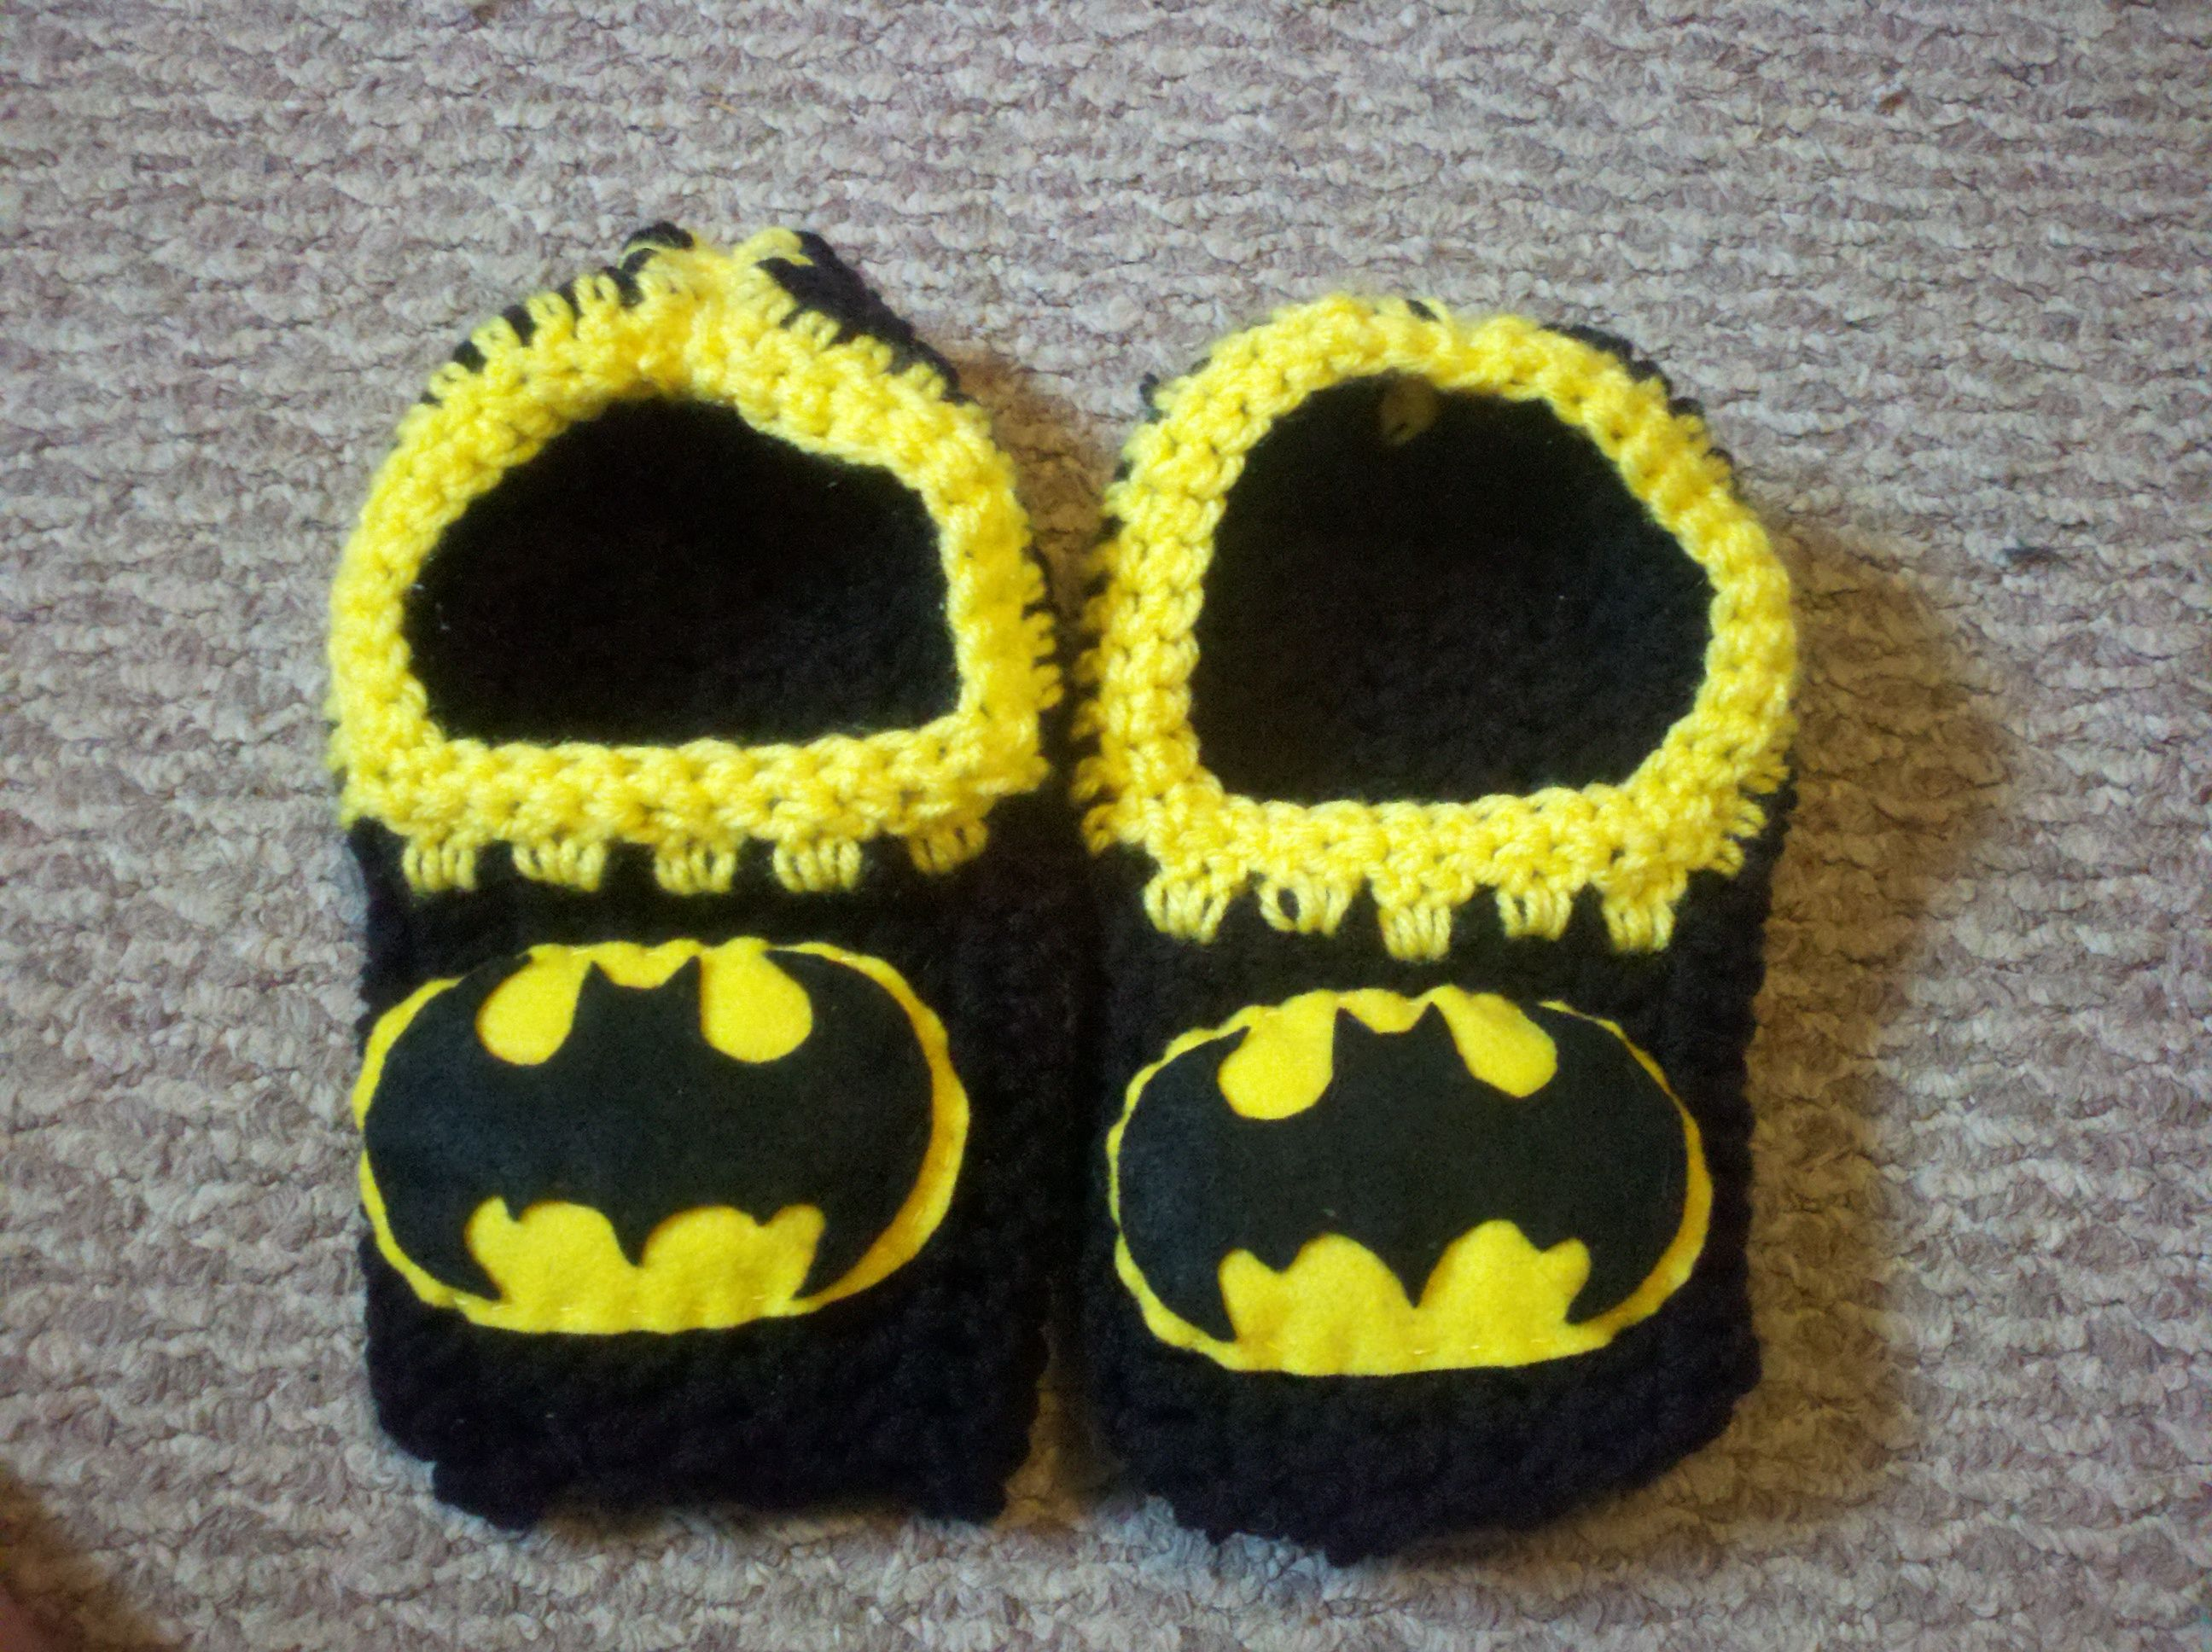 Batman Slippers I made for my dad! | Crochet Rules! | Pinterest ...